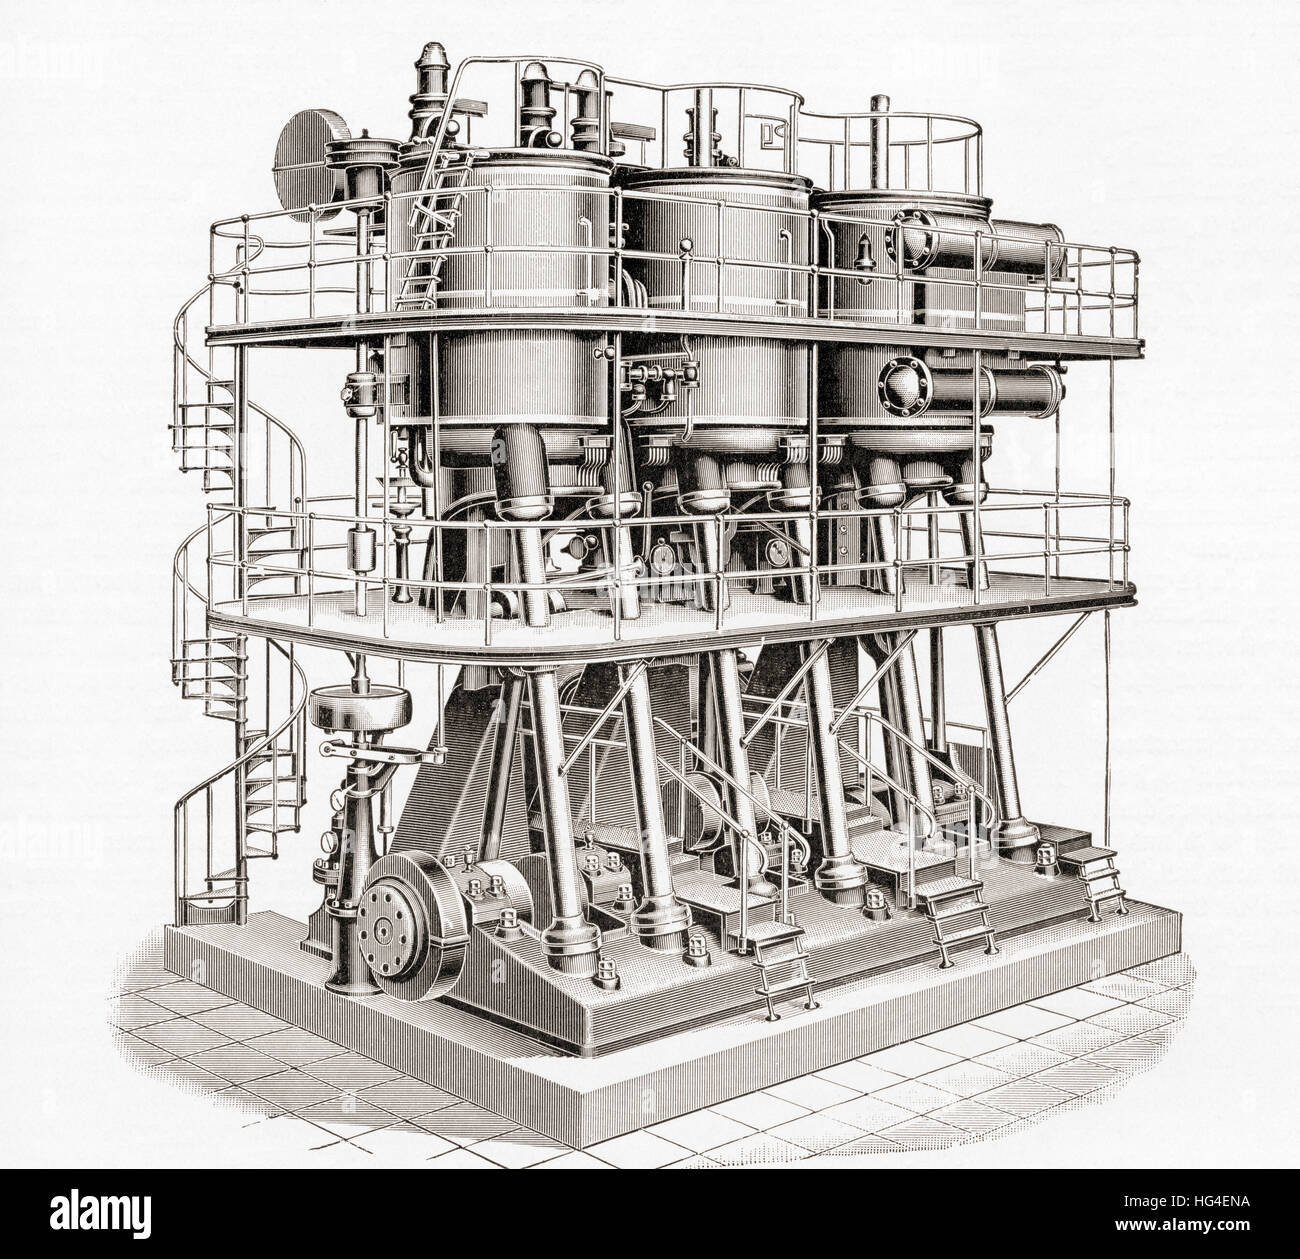 Early 20th century standing triple expansion compound steam engine.  From Meyers Lexicon, published 1924. - Stock Image